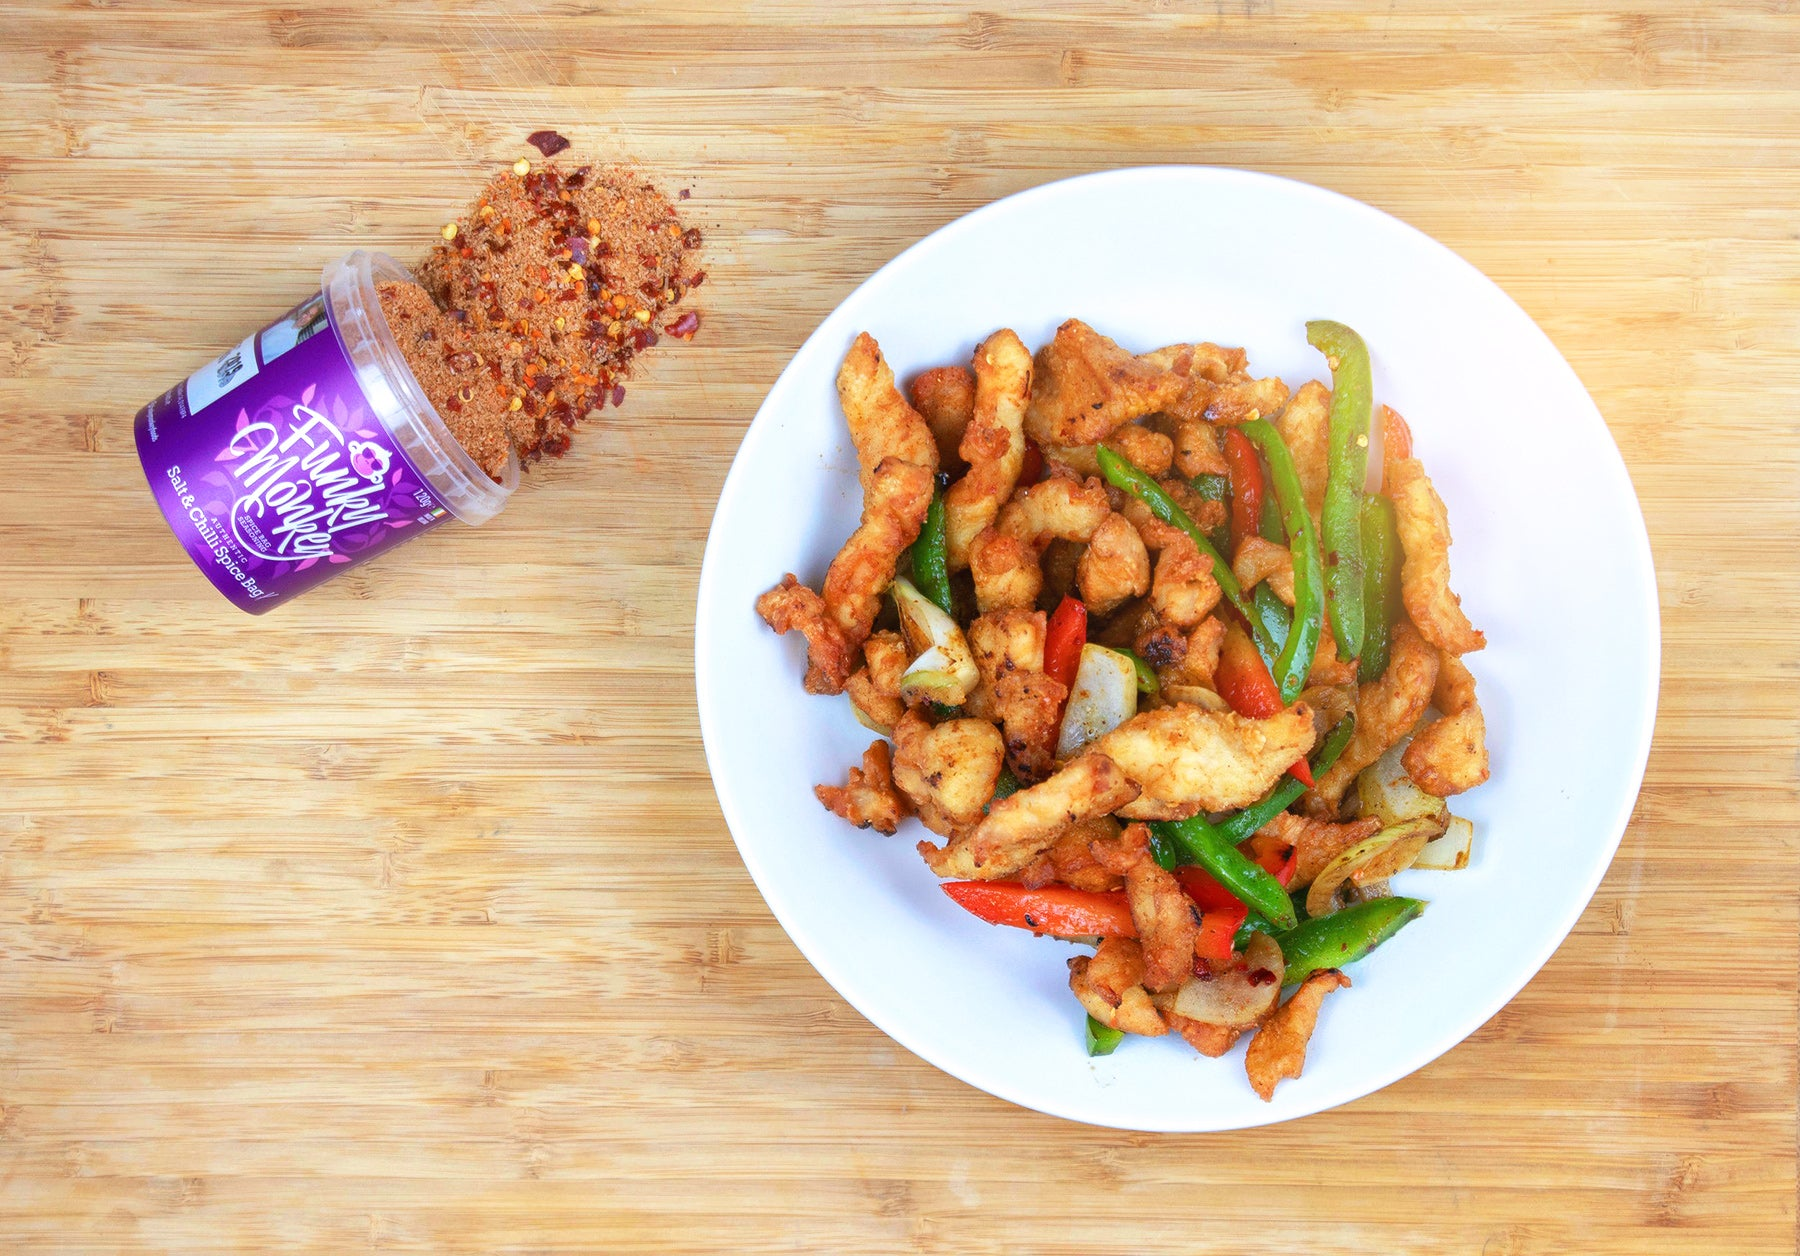 Funky Monkey Salt & Chilli Chicken